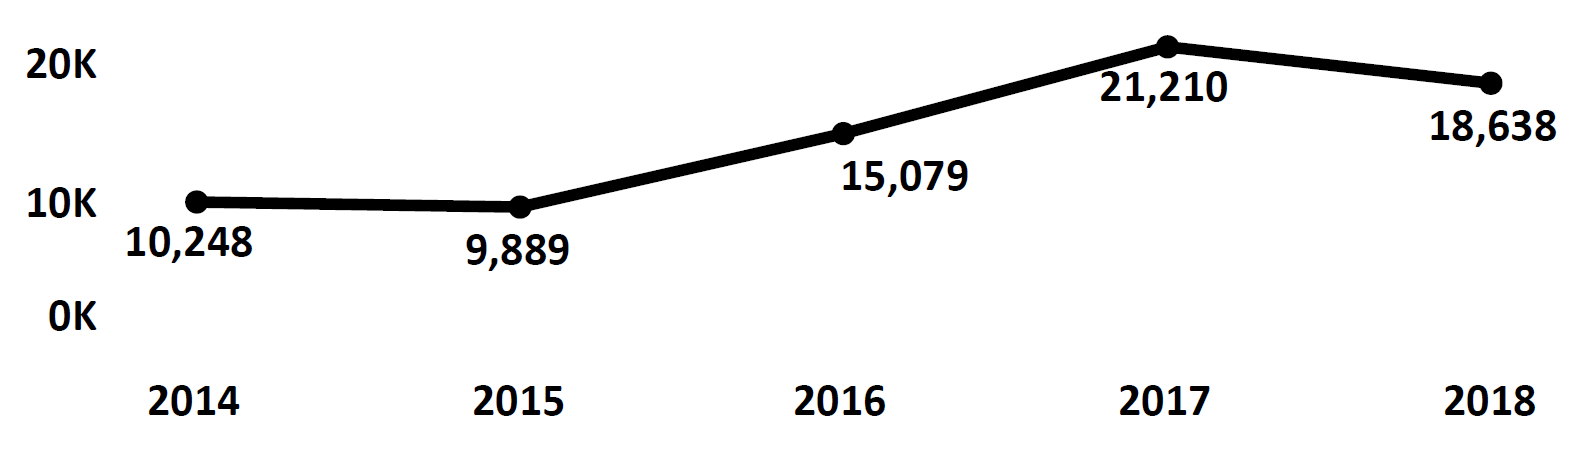 Graph of Do Not Call complaints recorded in Montana from fiscal year 2014 to fiscal year 2018. In 2014 there were 10,248 complaints filed, which dipped the following year then increased to peak at 21,210 in 2017. In 2018 there were 18,638 complaints filed, fewer than 2017.